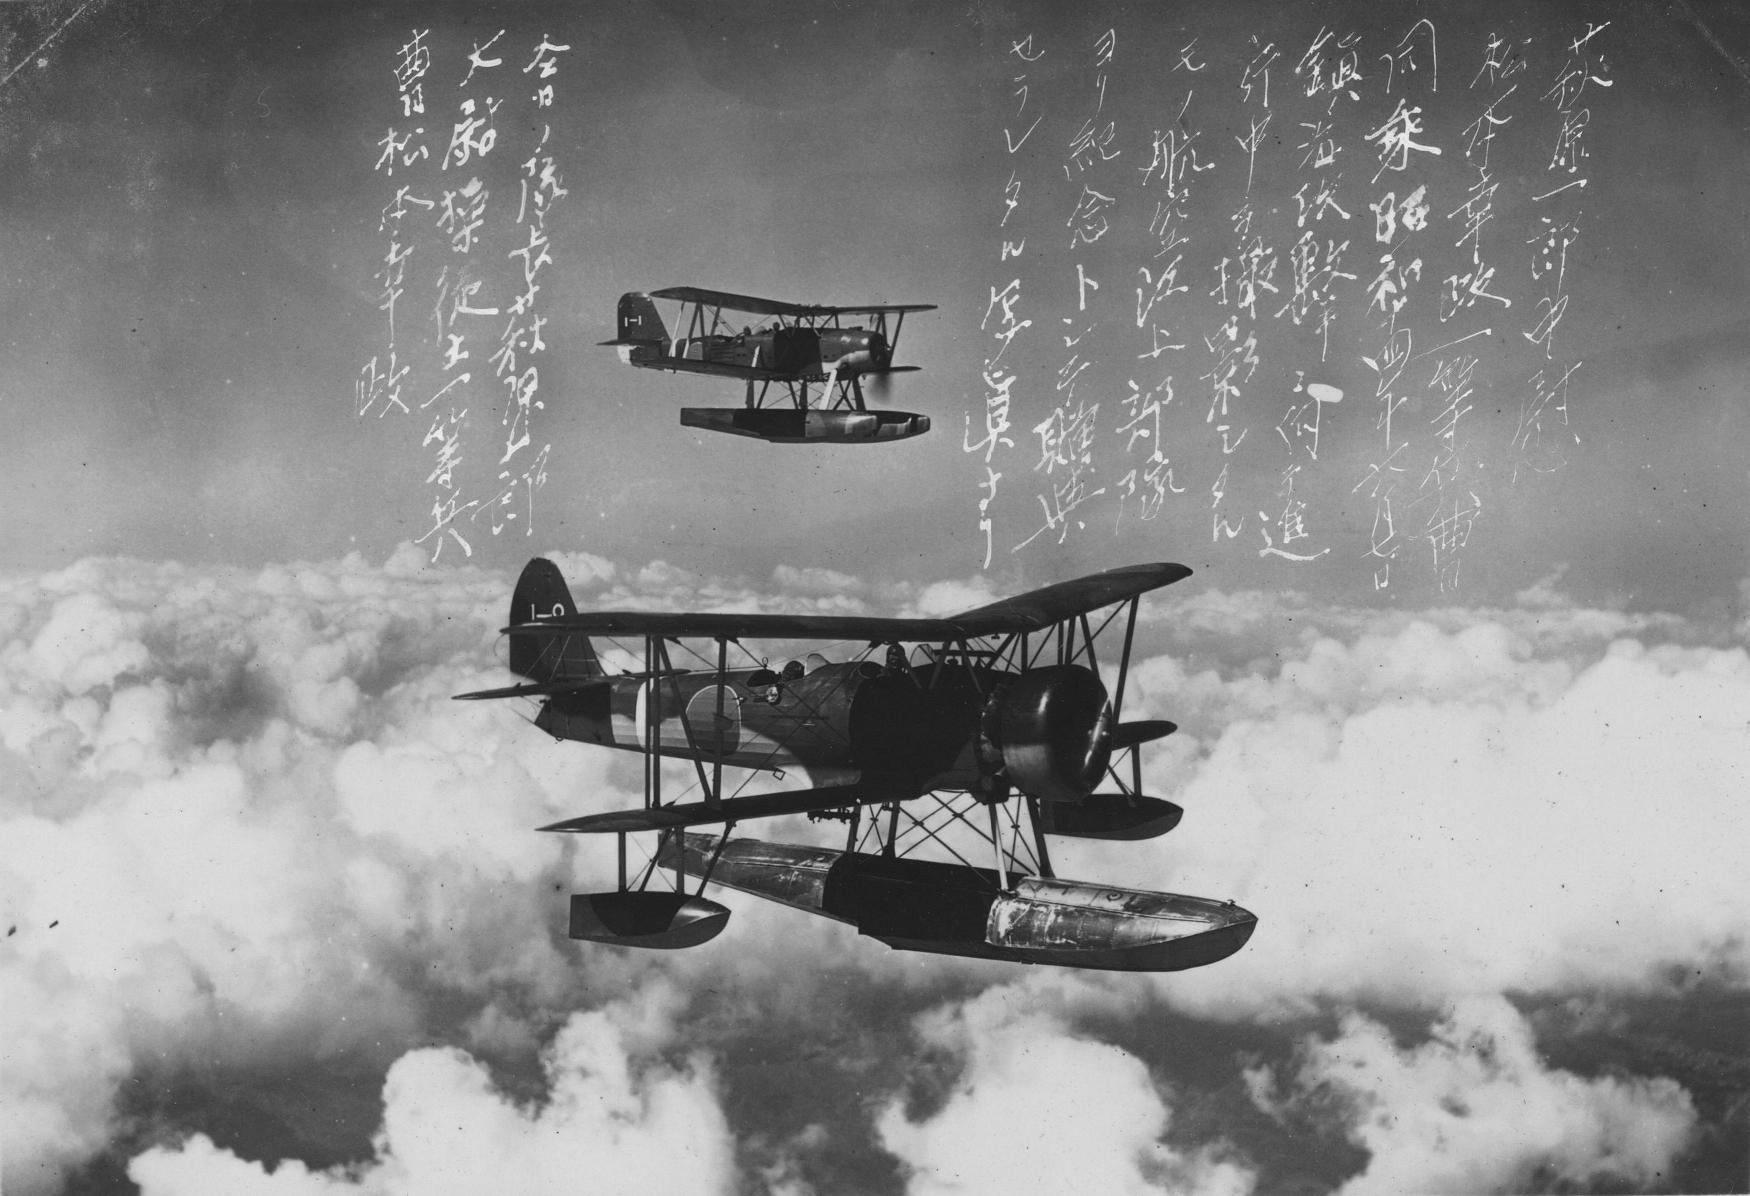 Imperial Japanese Navy Air Service